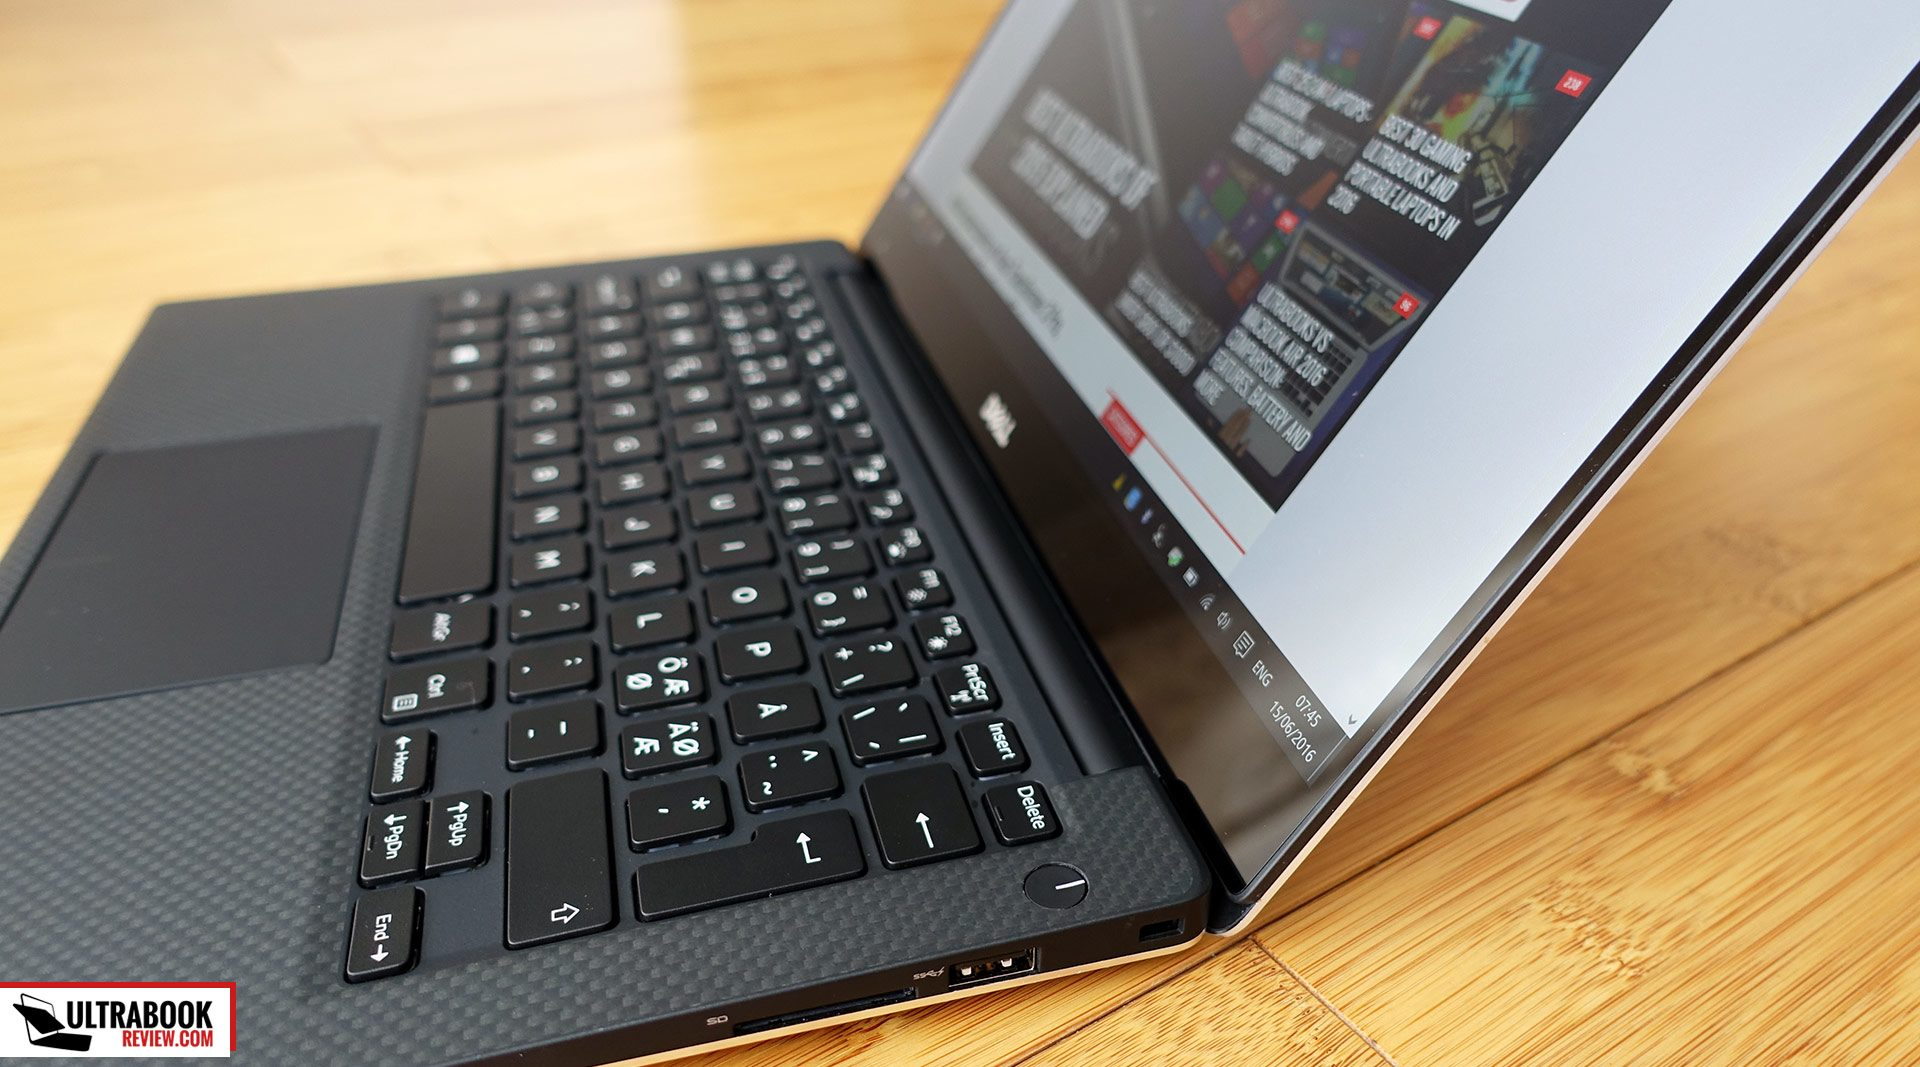 My Impressions Of The Dell Xps 13 9350 Core I7 Qhd Touchscreen